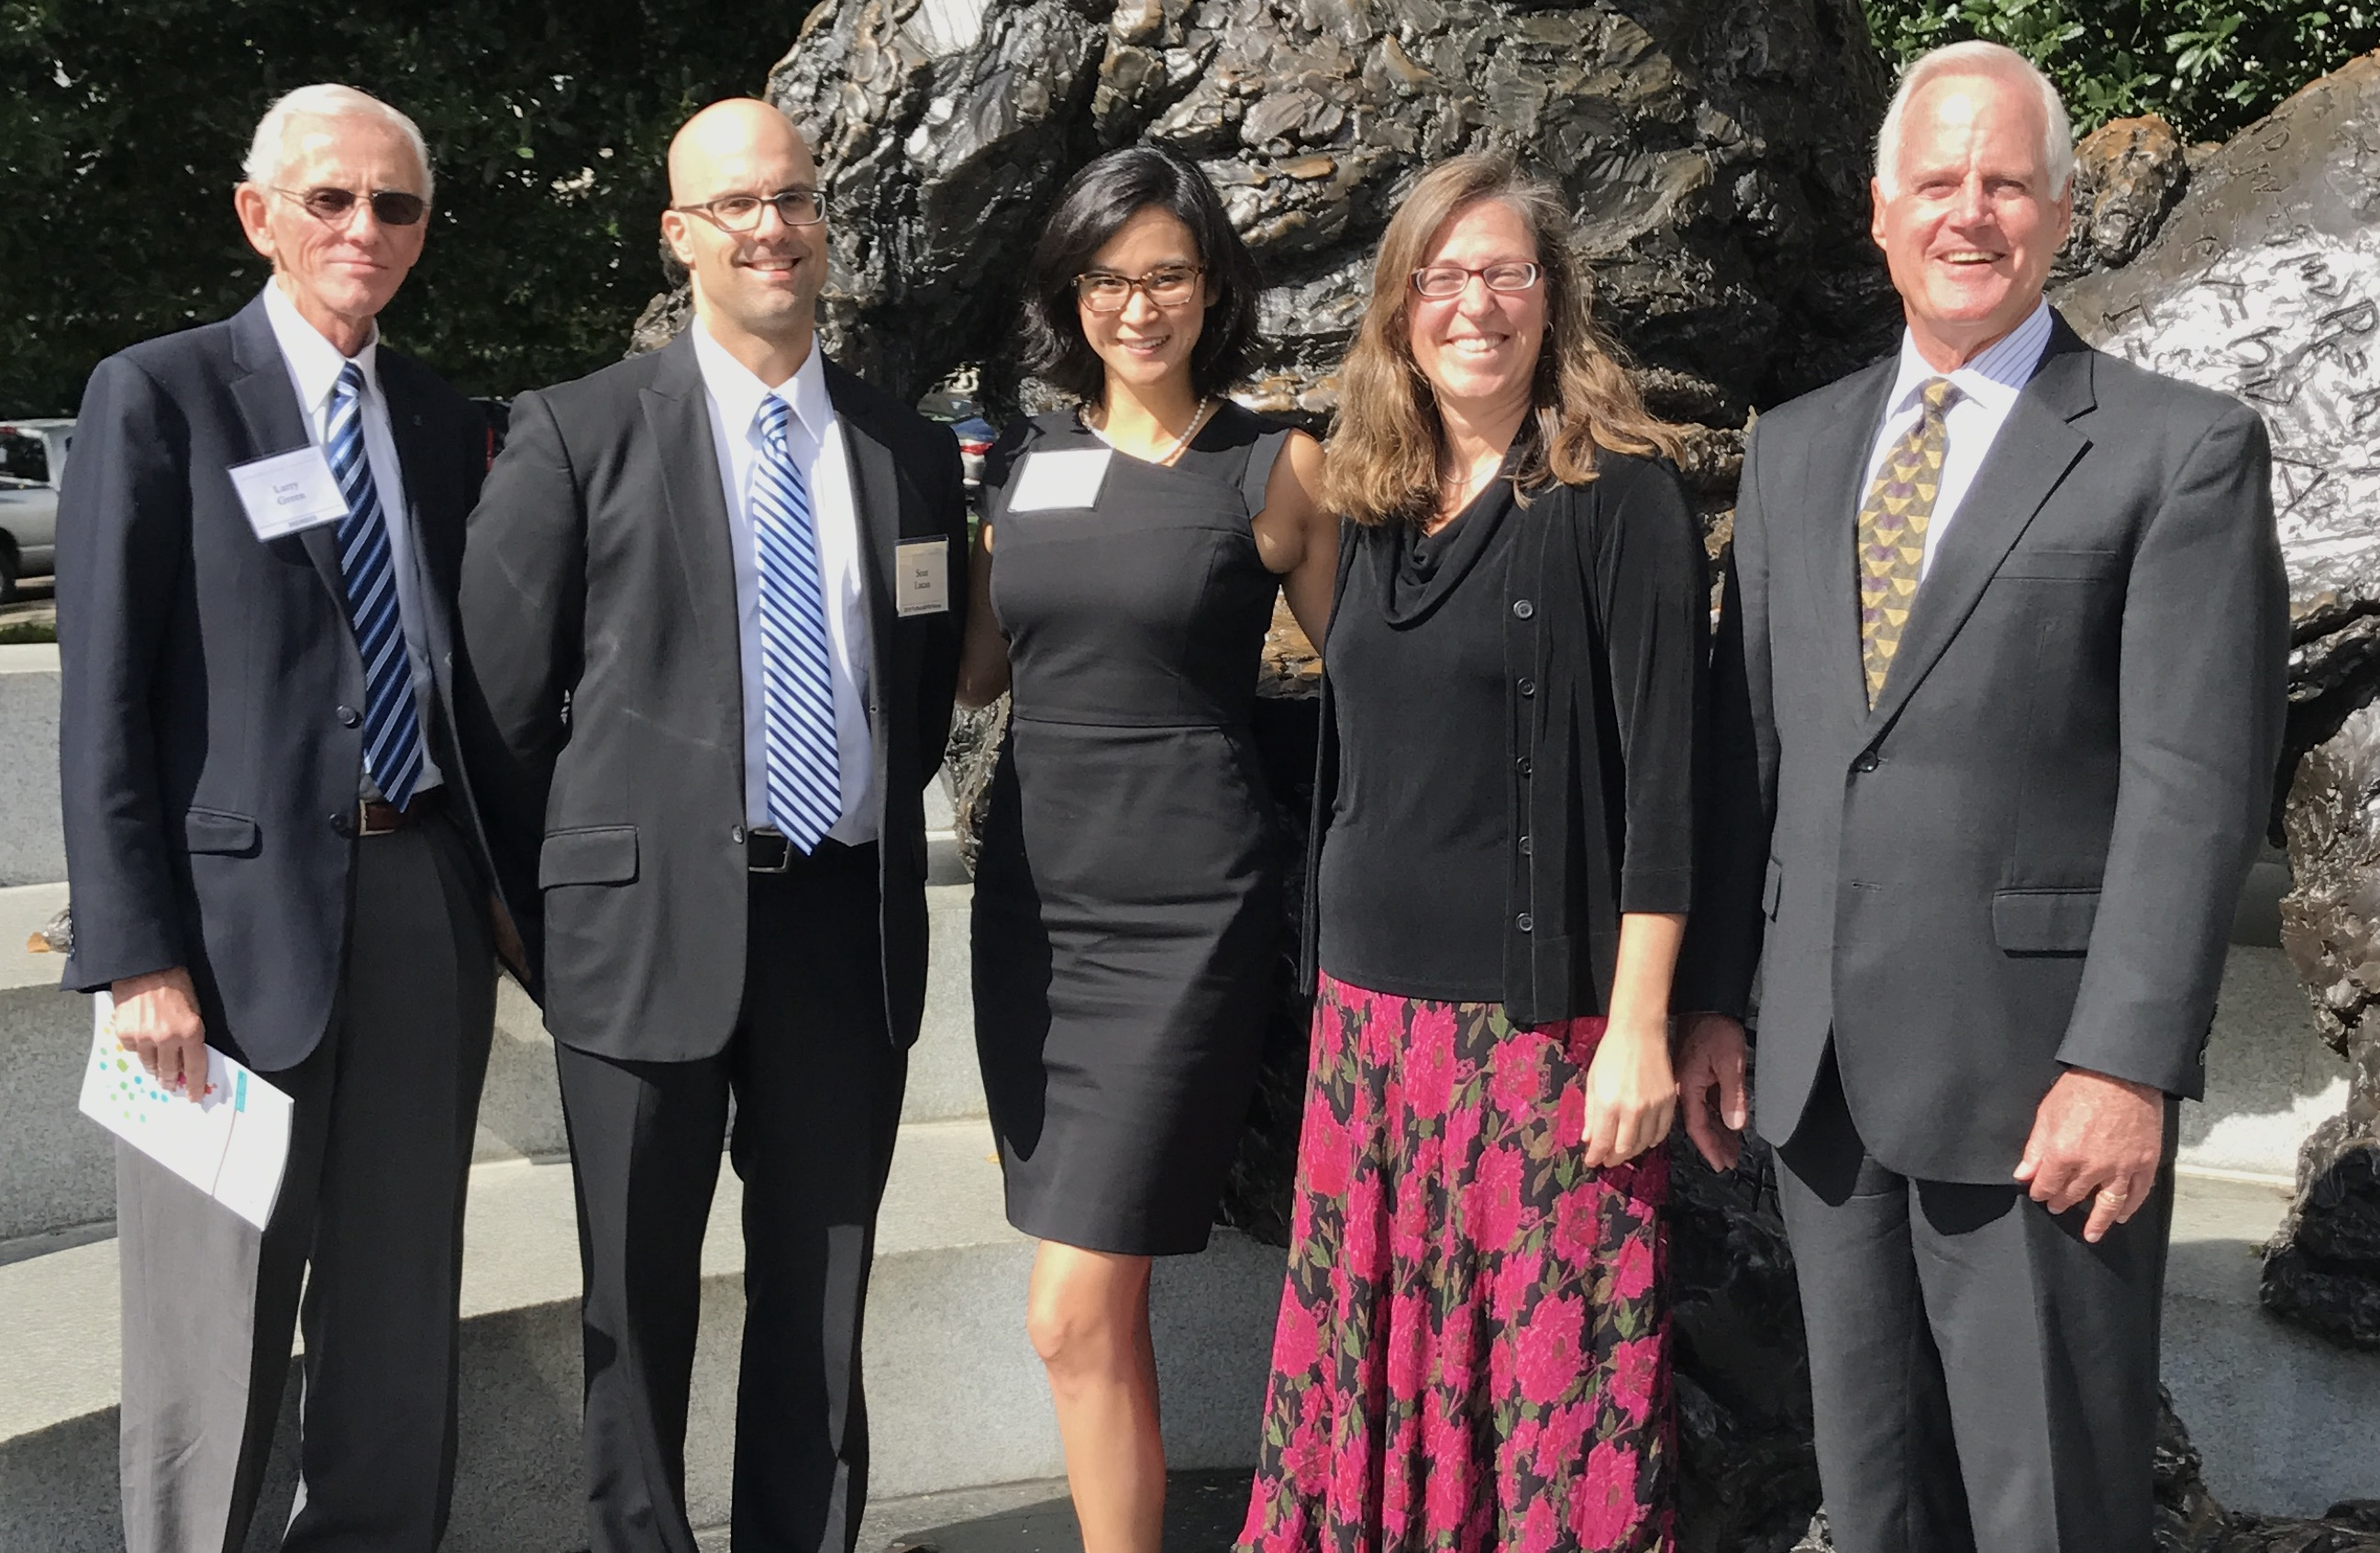 Tammy Chang MD pictured with James Puffer, Larry Green, Sean Lucan and Jennifer Devoe